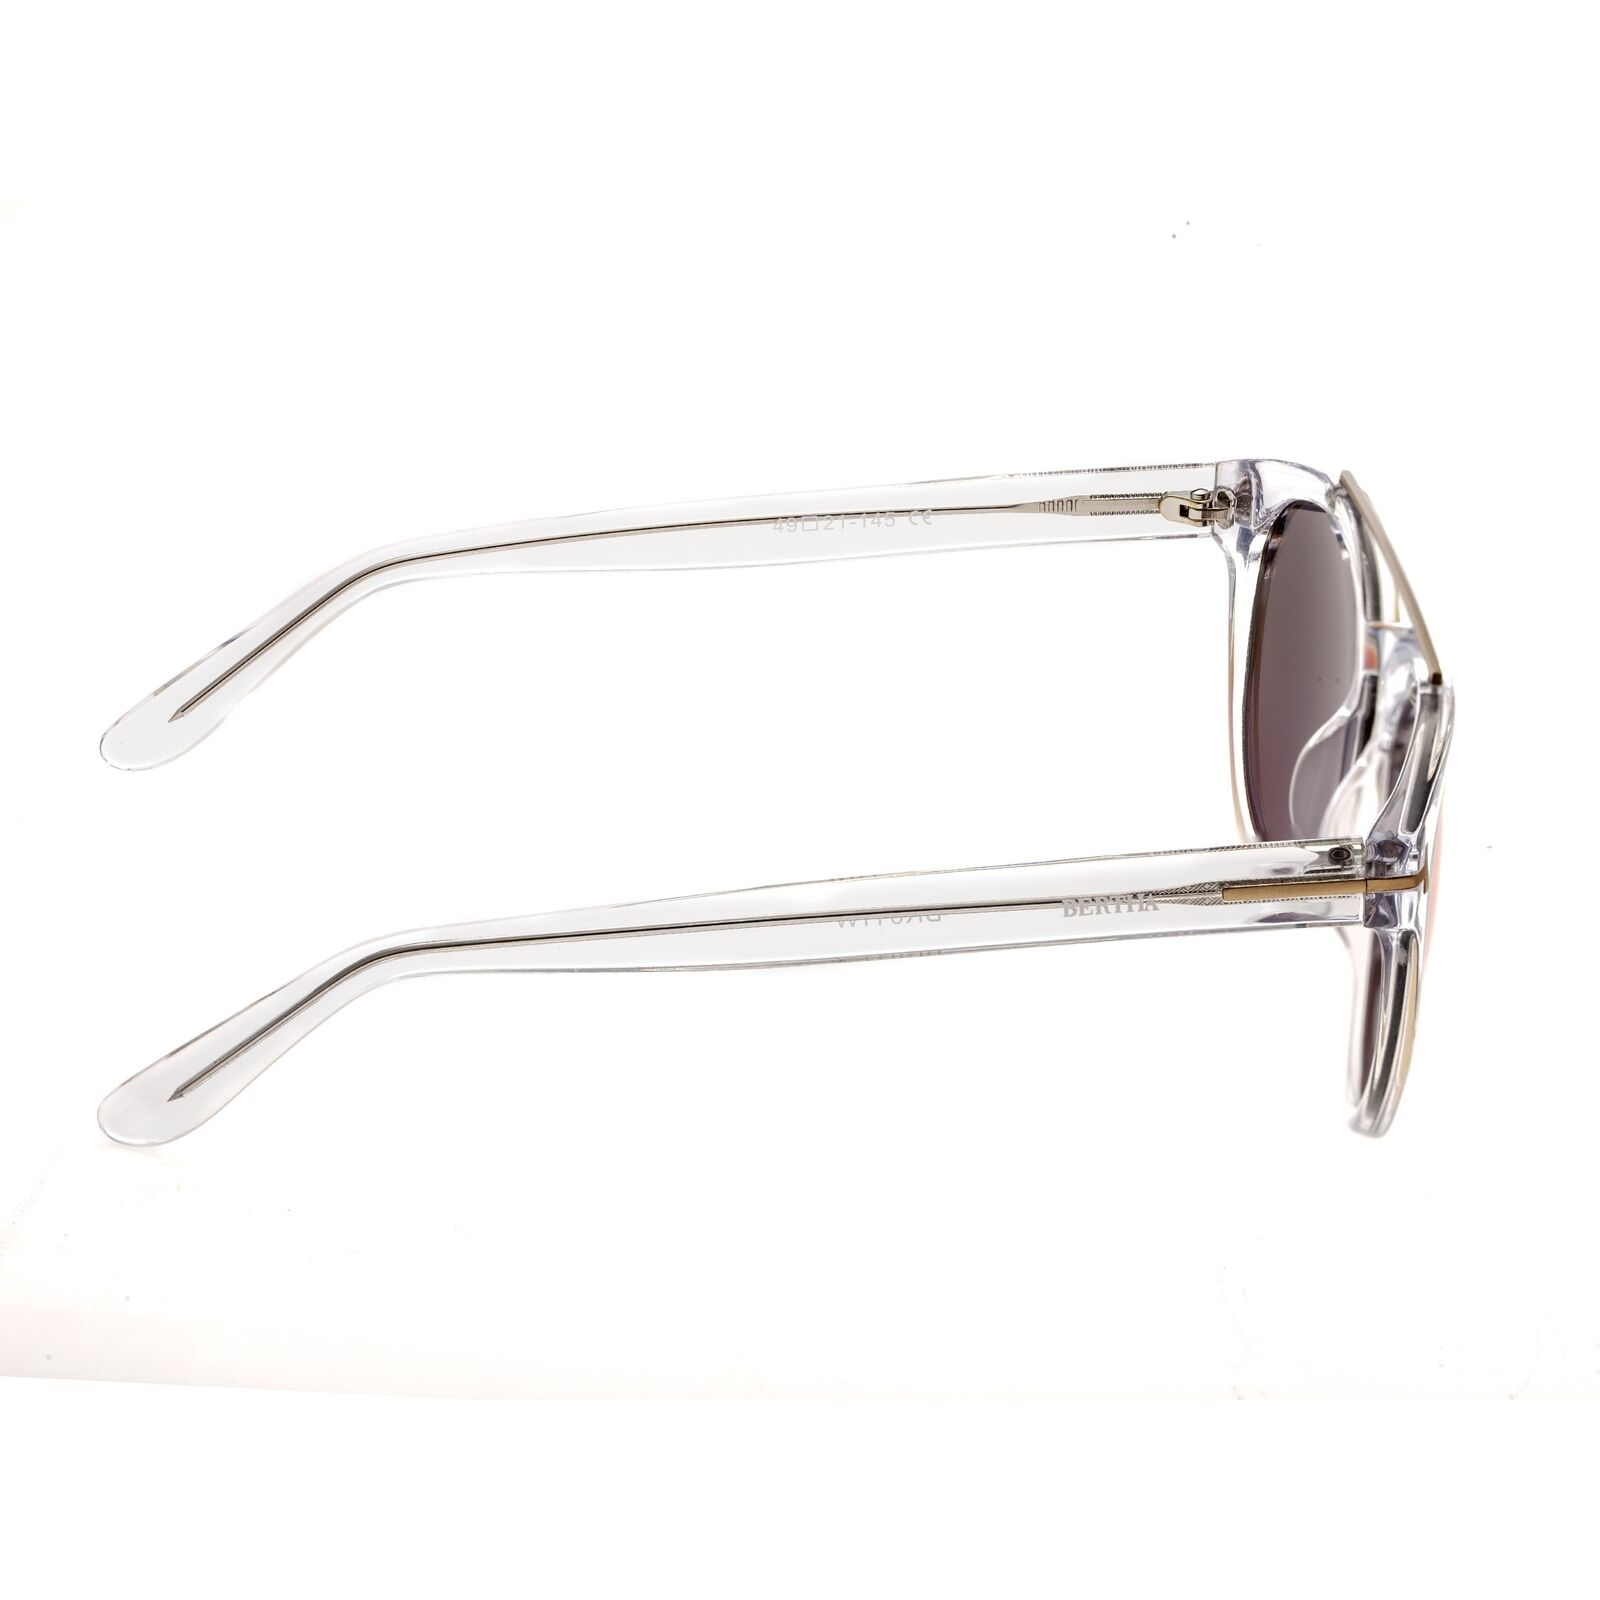 Details about Bertha Ava Clear Polarized Rose Gold Lens Women's Sunglasses BR011W